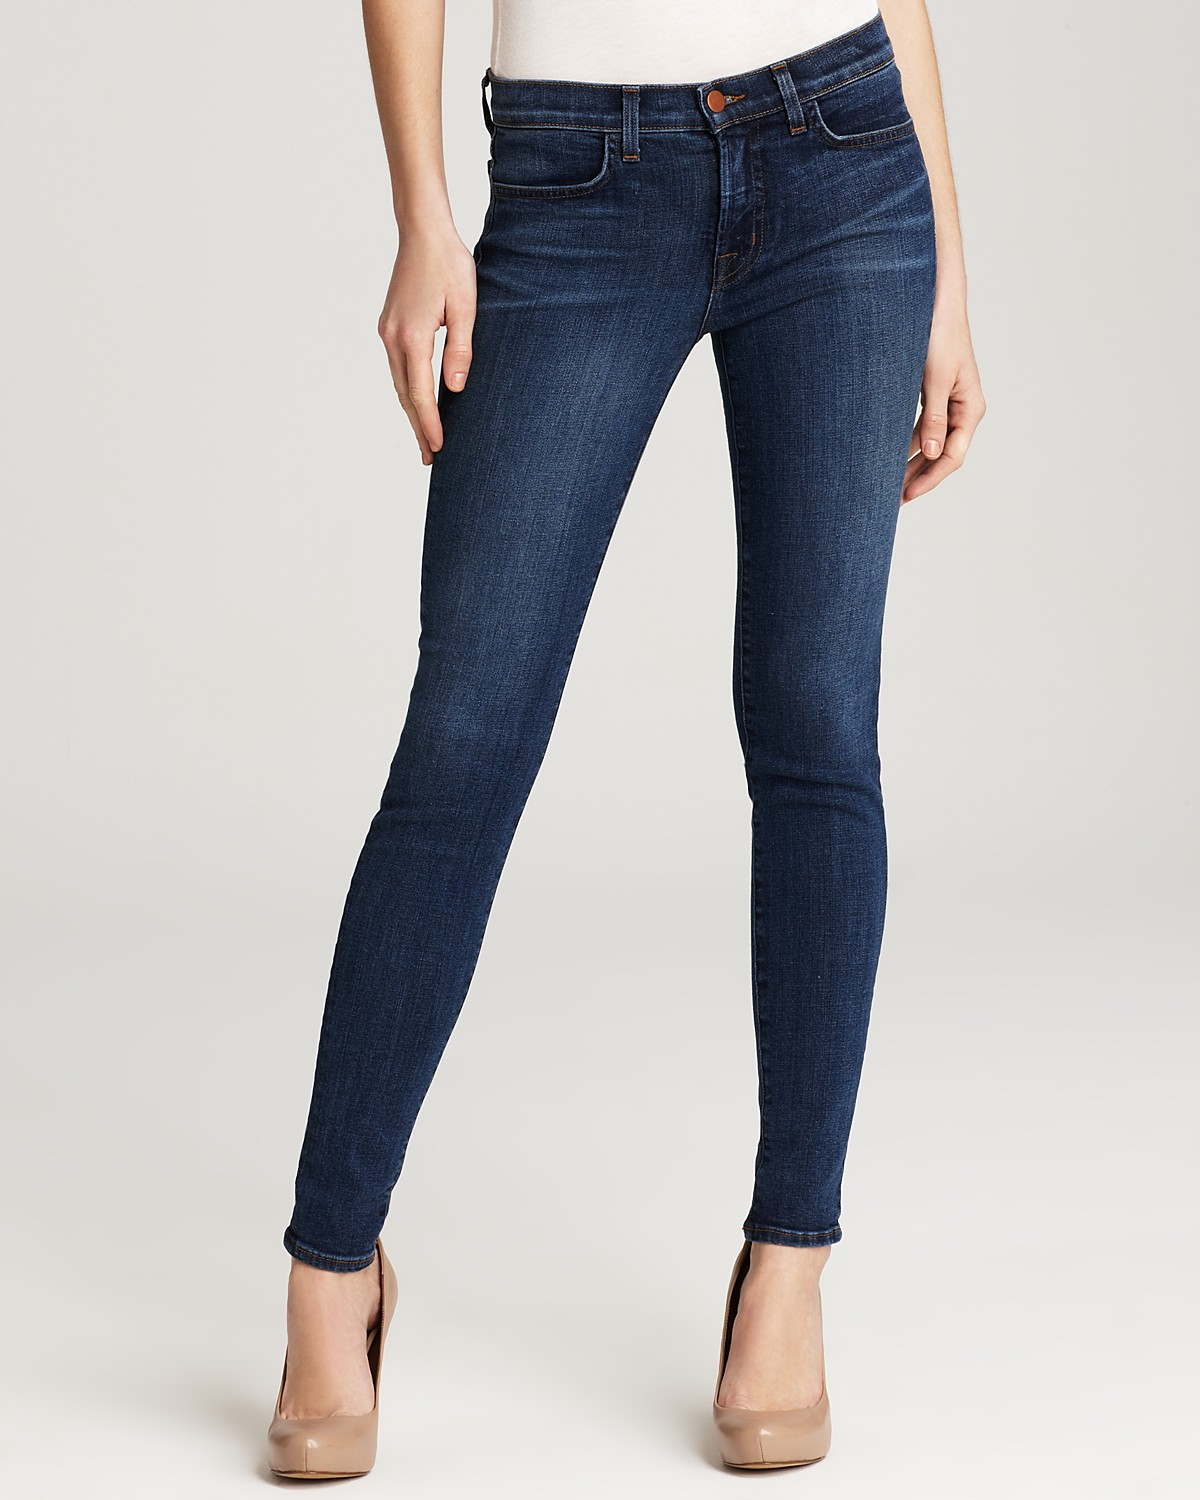 Find a modern, sleek take on classic denim with Old Navy's skinny jeans for women. Old Navy Skinny Jeans Collection. Our women's skinny jeans are made to make you look thinner and your legs look longer. You'll find women's skinny jeans have the classic looks and the trendy styles to flatter your figure.